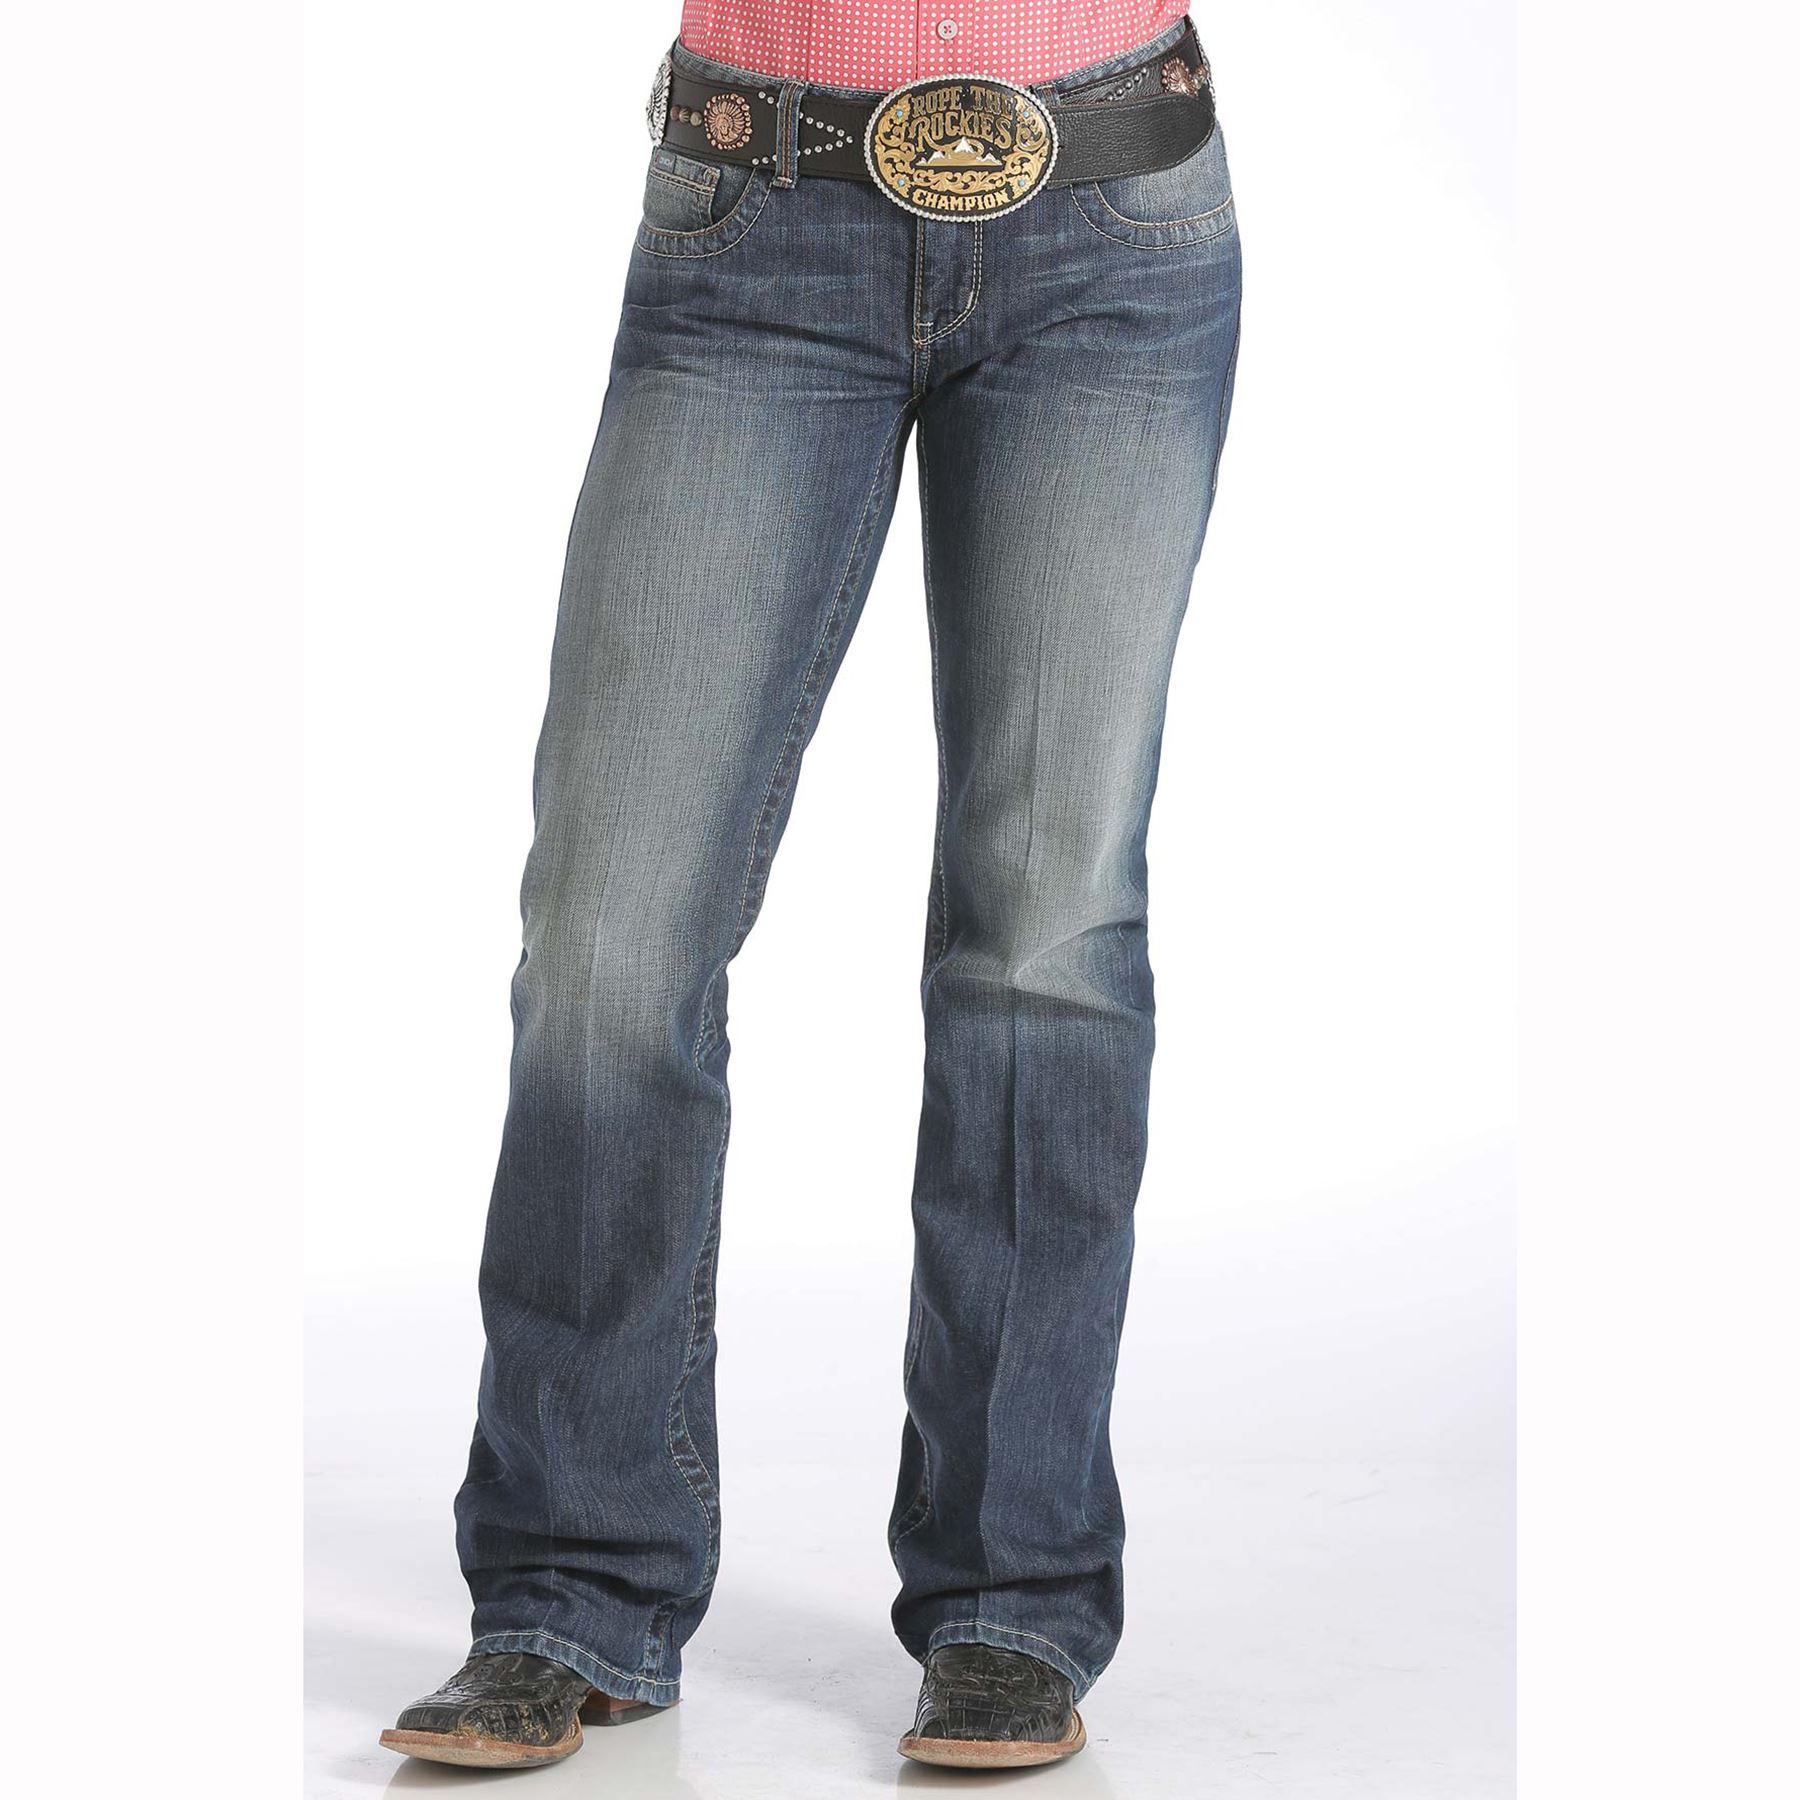 372d83ad45a Cinch Ladies Ada Relaxed Fit Jeans in Apparel Boots at Schneider ...